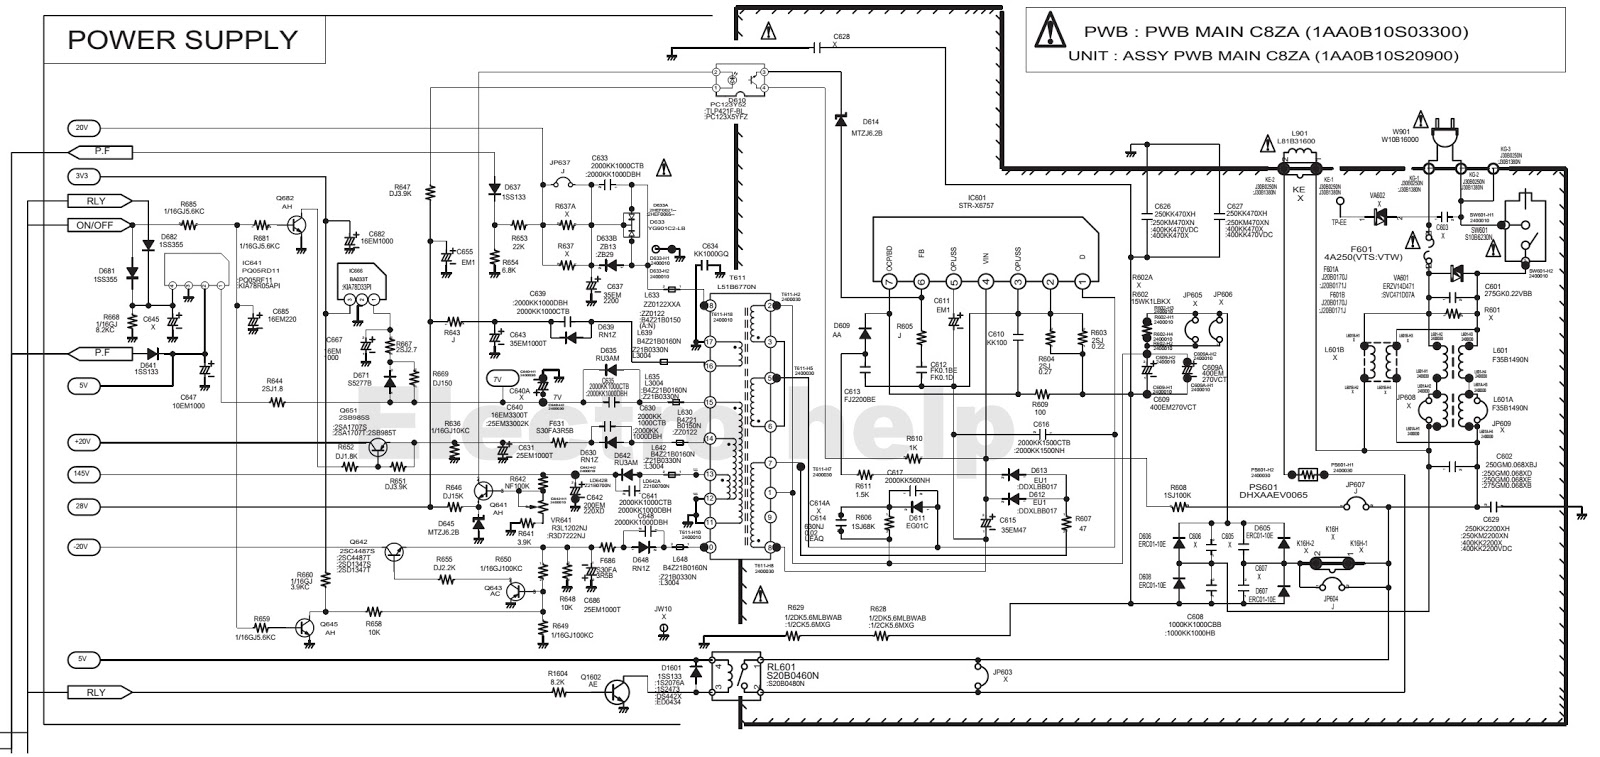 Amazing Sanyo Schematic Diagram Wiring Diagram Wiring Cloud Uslyletkolfr09Org